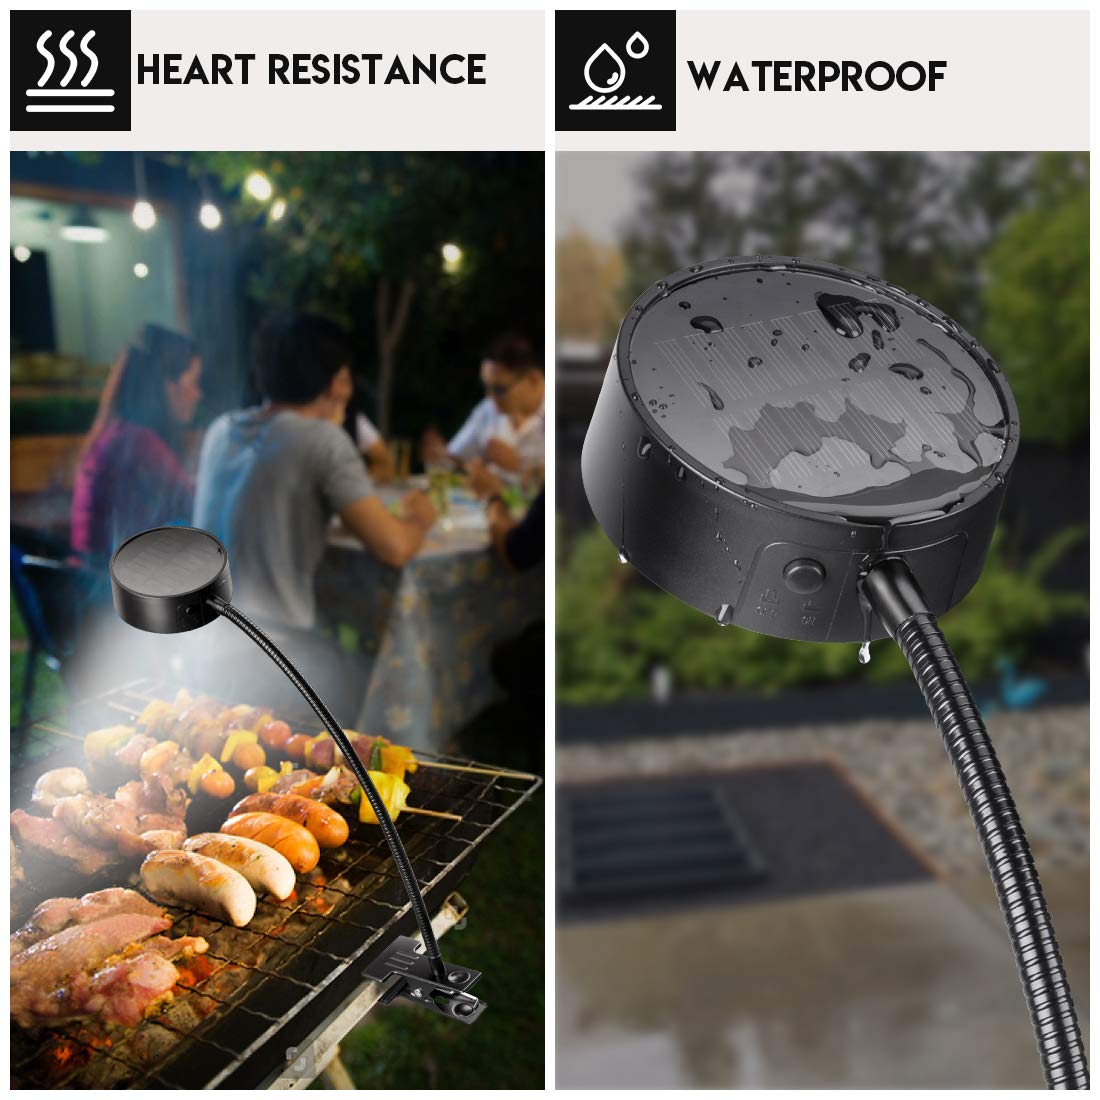 LeiDrail Grill Light LED Solar BBQ Lights Super Bright Wide-Angle Barbecue Lamp Flexible Gooseneck Outdoor Waterproof Anti-Shedding Clip for Charcoal Electric Desk Work Bench by LeiDrail (Image #3)